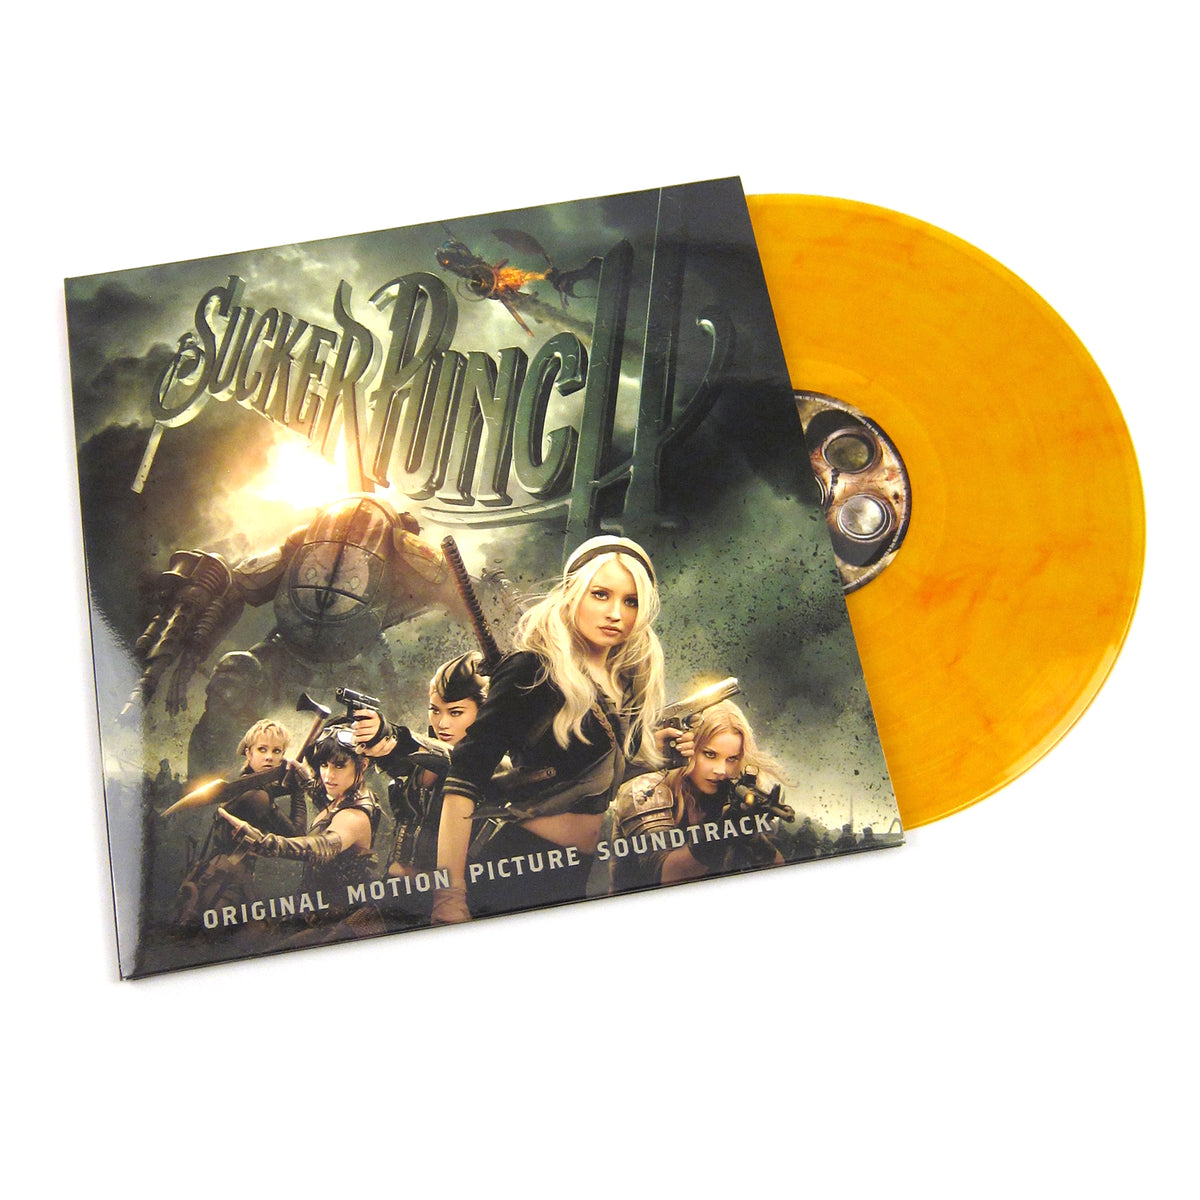 Sucker Punch: Sucker Punch Soundtrack (Music On Vinyl, 180g, Amber Marbled Colored Vinyl) Vinyl LP